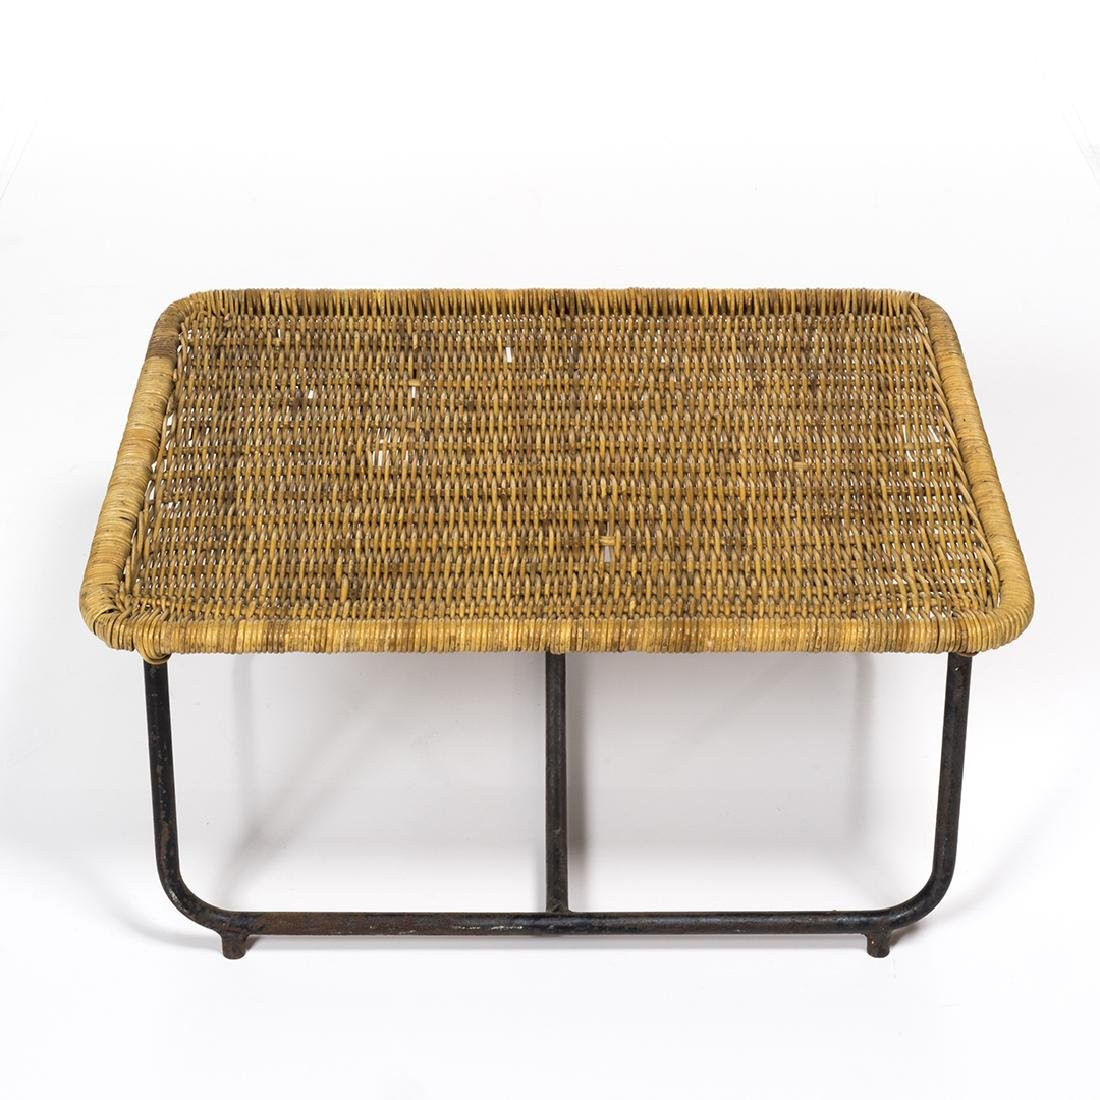 Rattan and Iron Low Table - 4